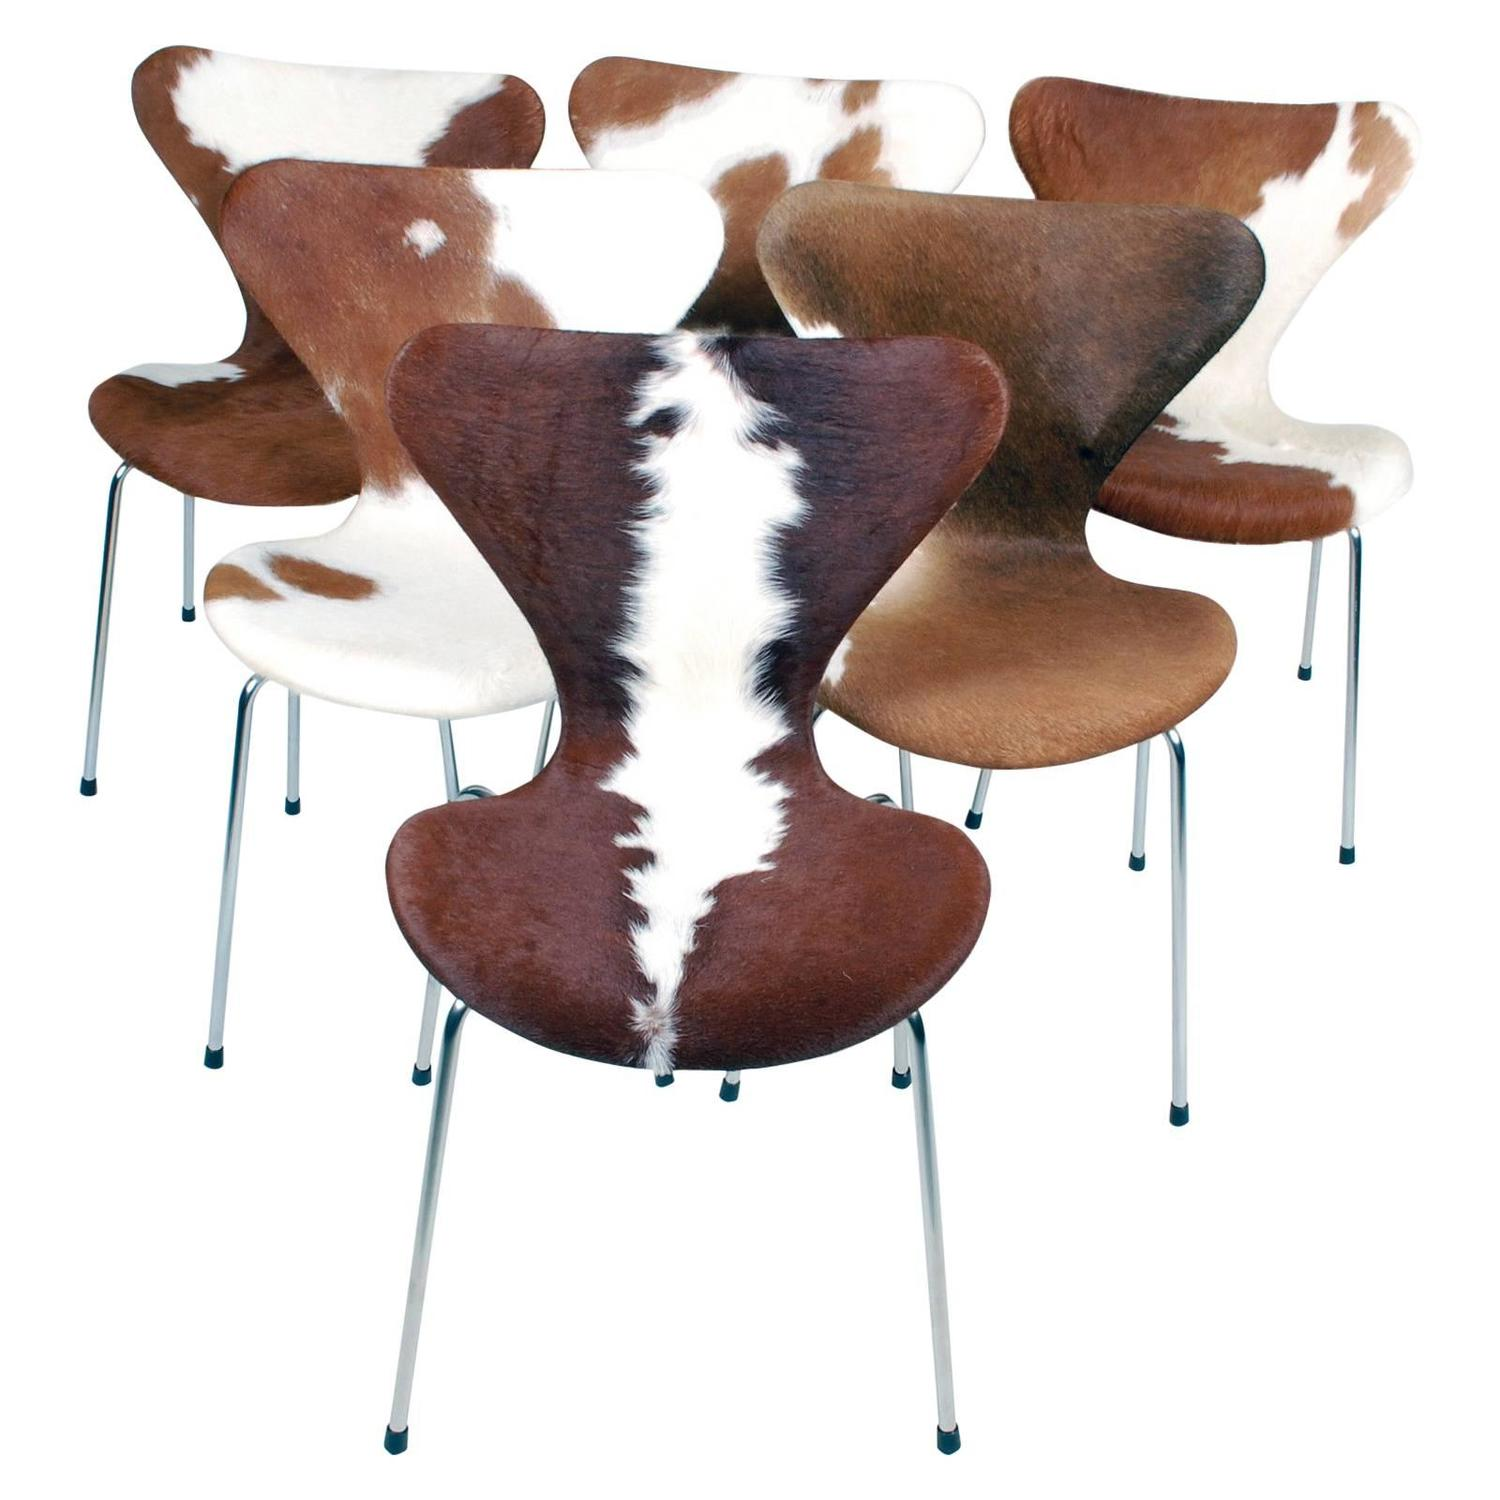 Arne Jacobsen Series 7 Chair with Cowhide Model 3107 for Fritz